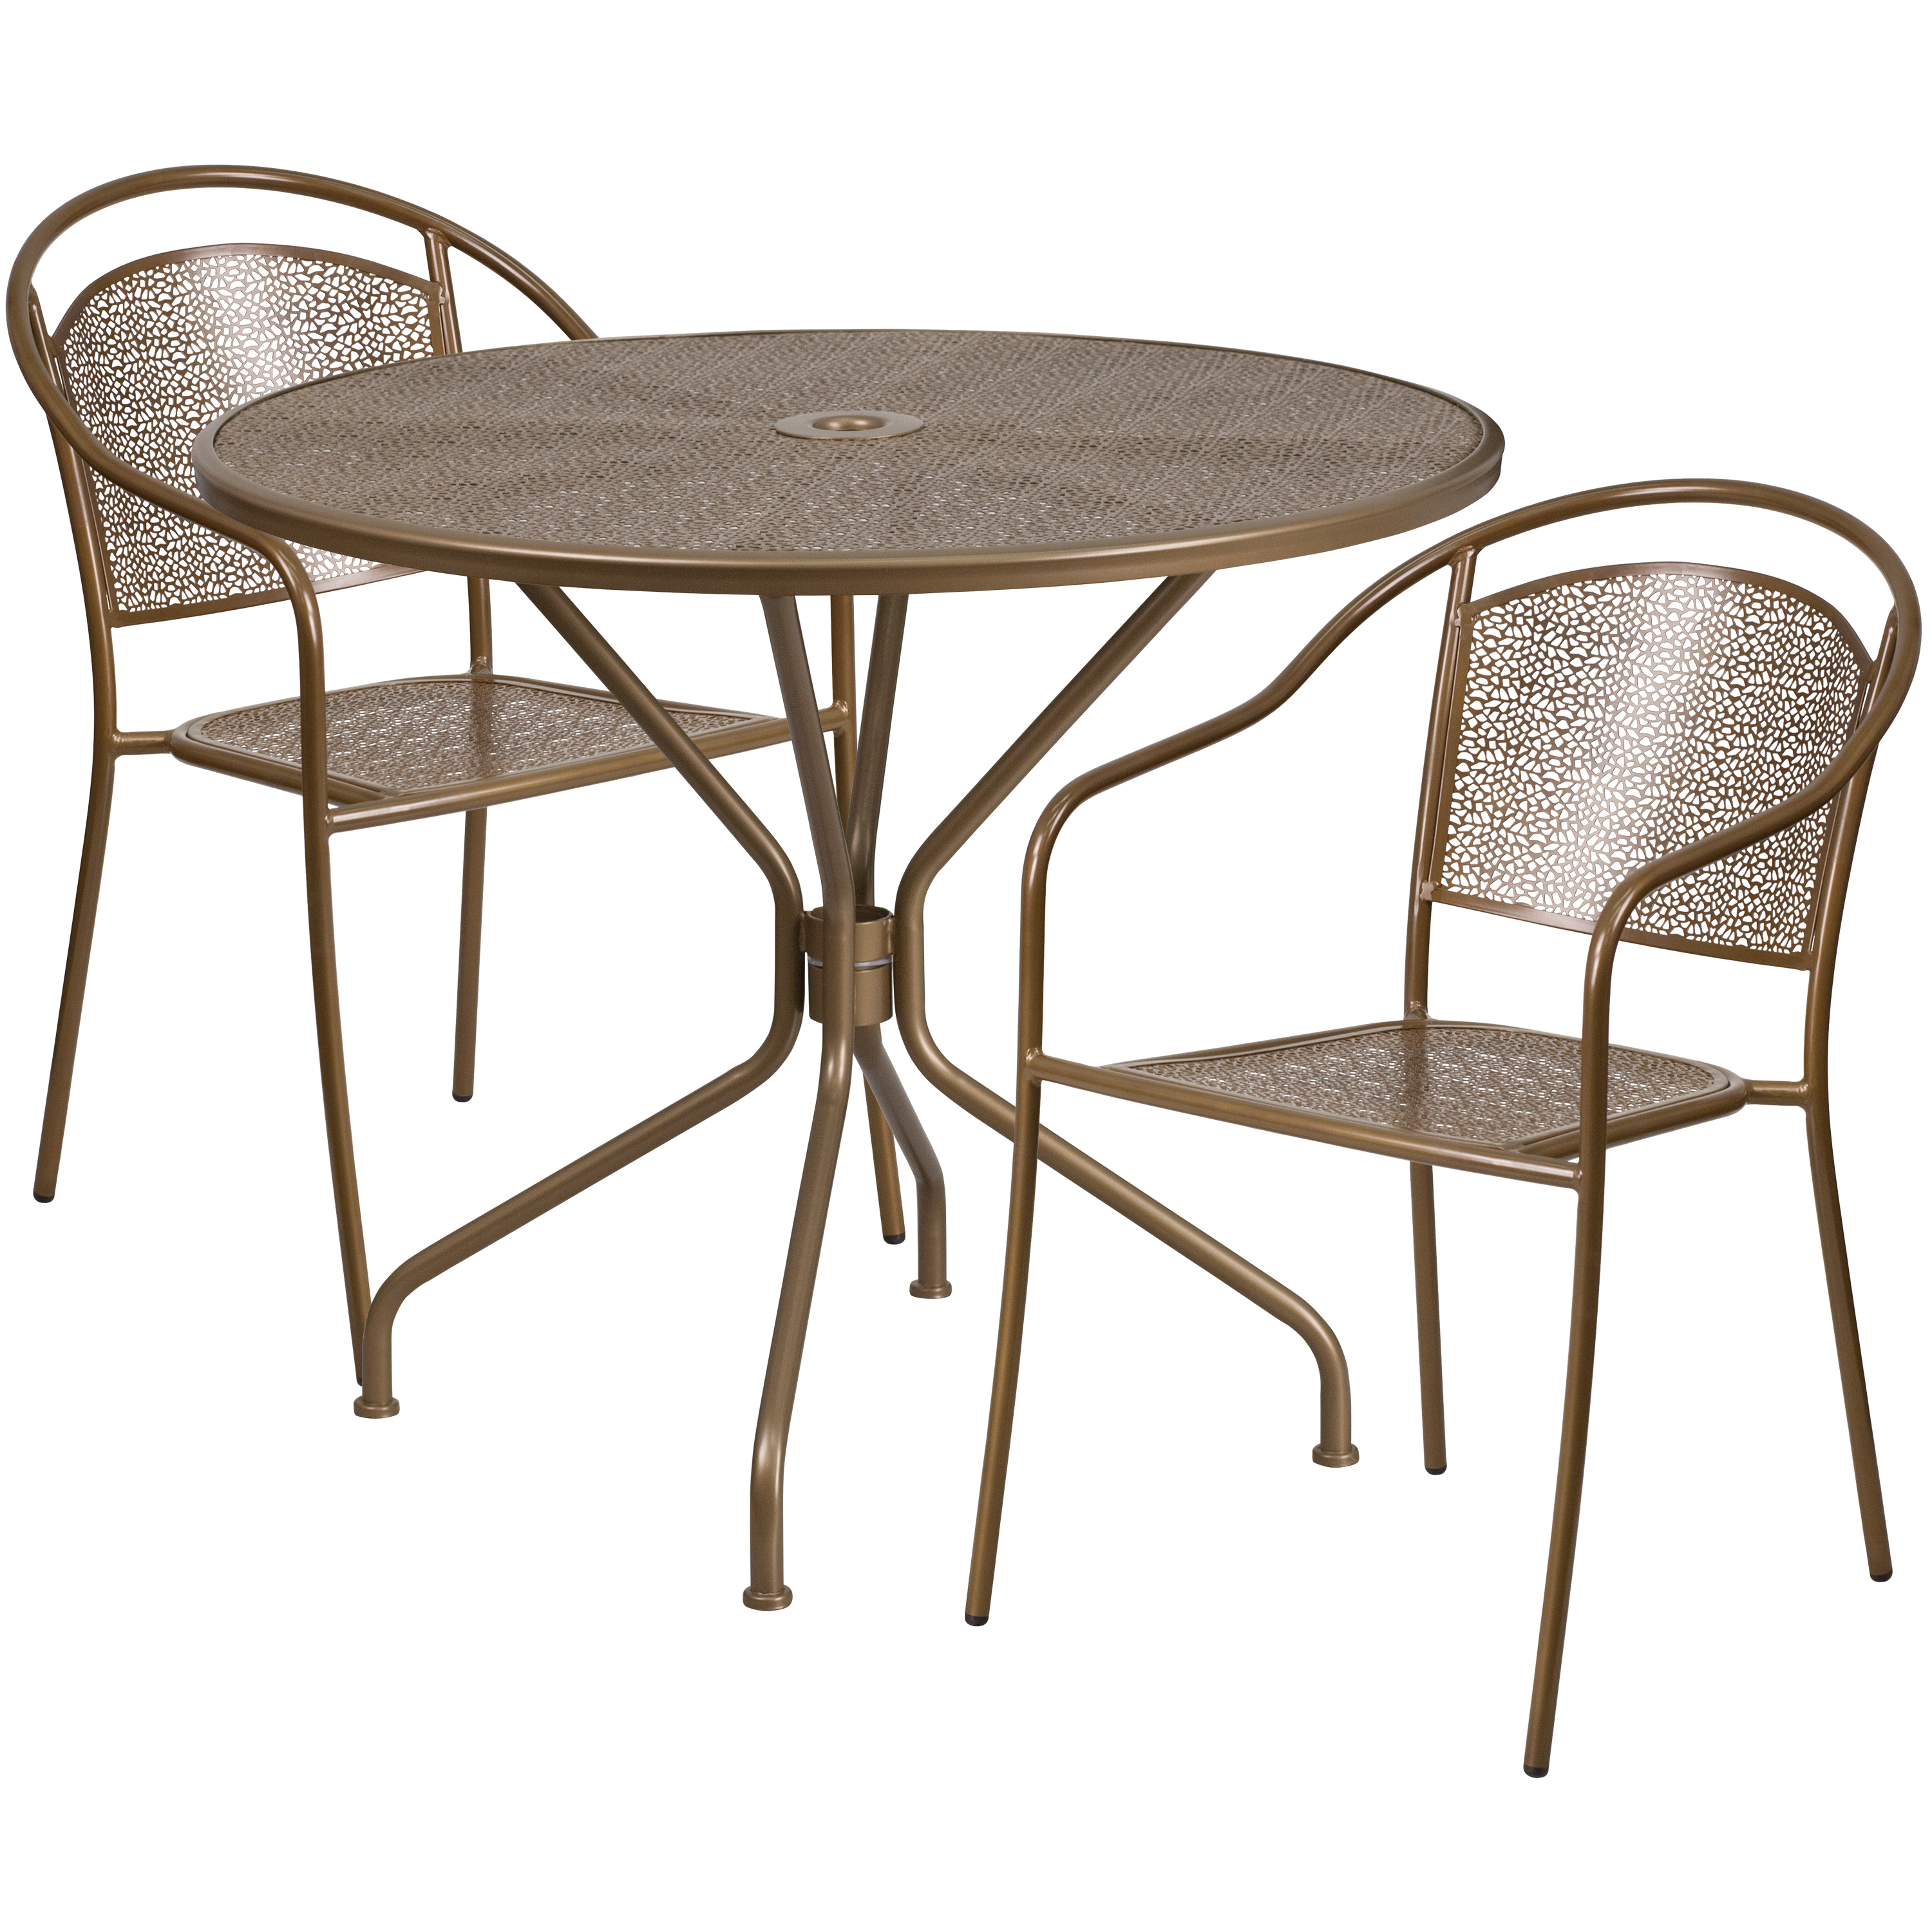 """Flash Furniture 35.25"""" Round Indoor-Outdoor Steel Patio Table Set with 2 Round Back Chairs, Multiple Colors"""